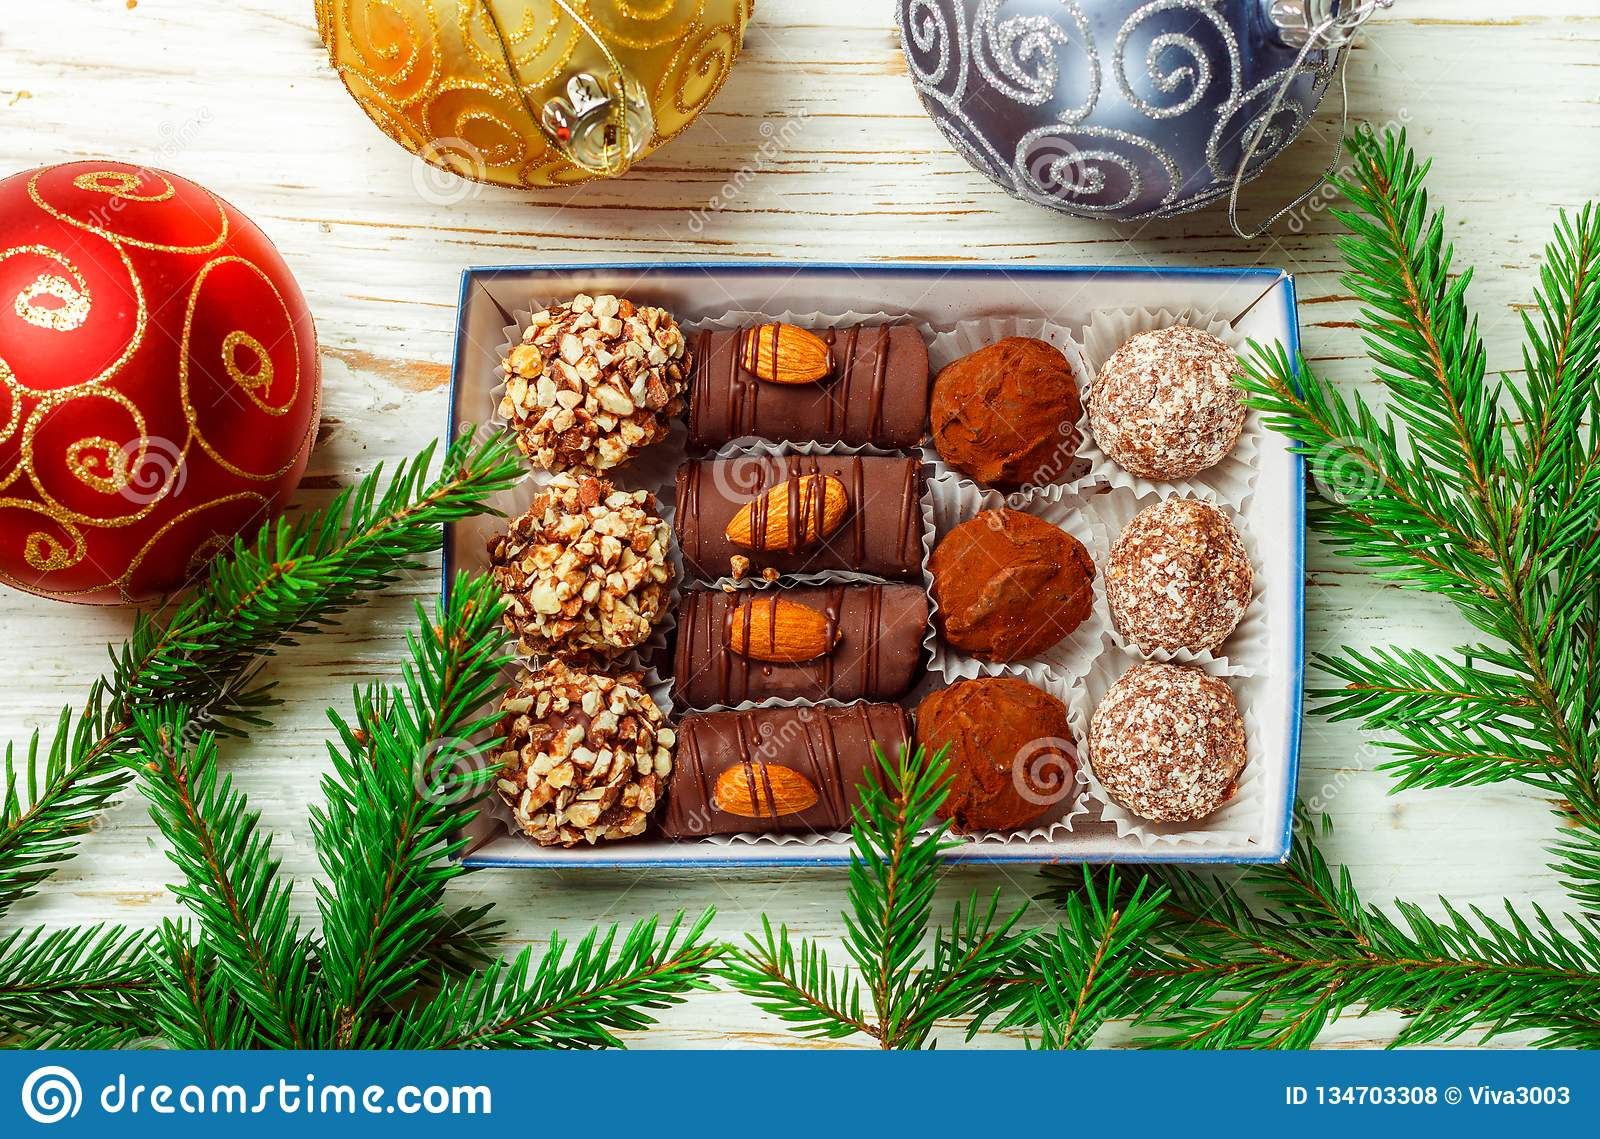 Set of chocolates. Truffles with almonds, coconut and cookie crumbs